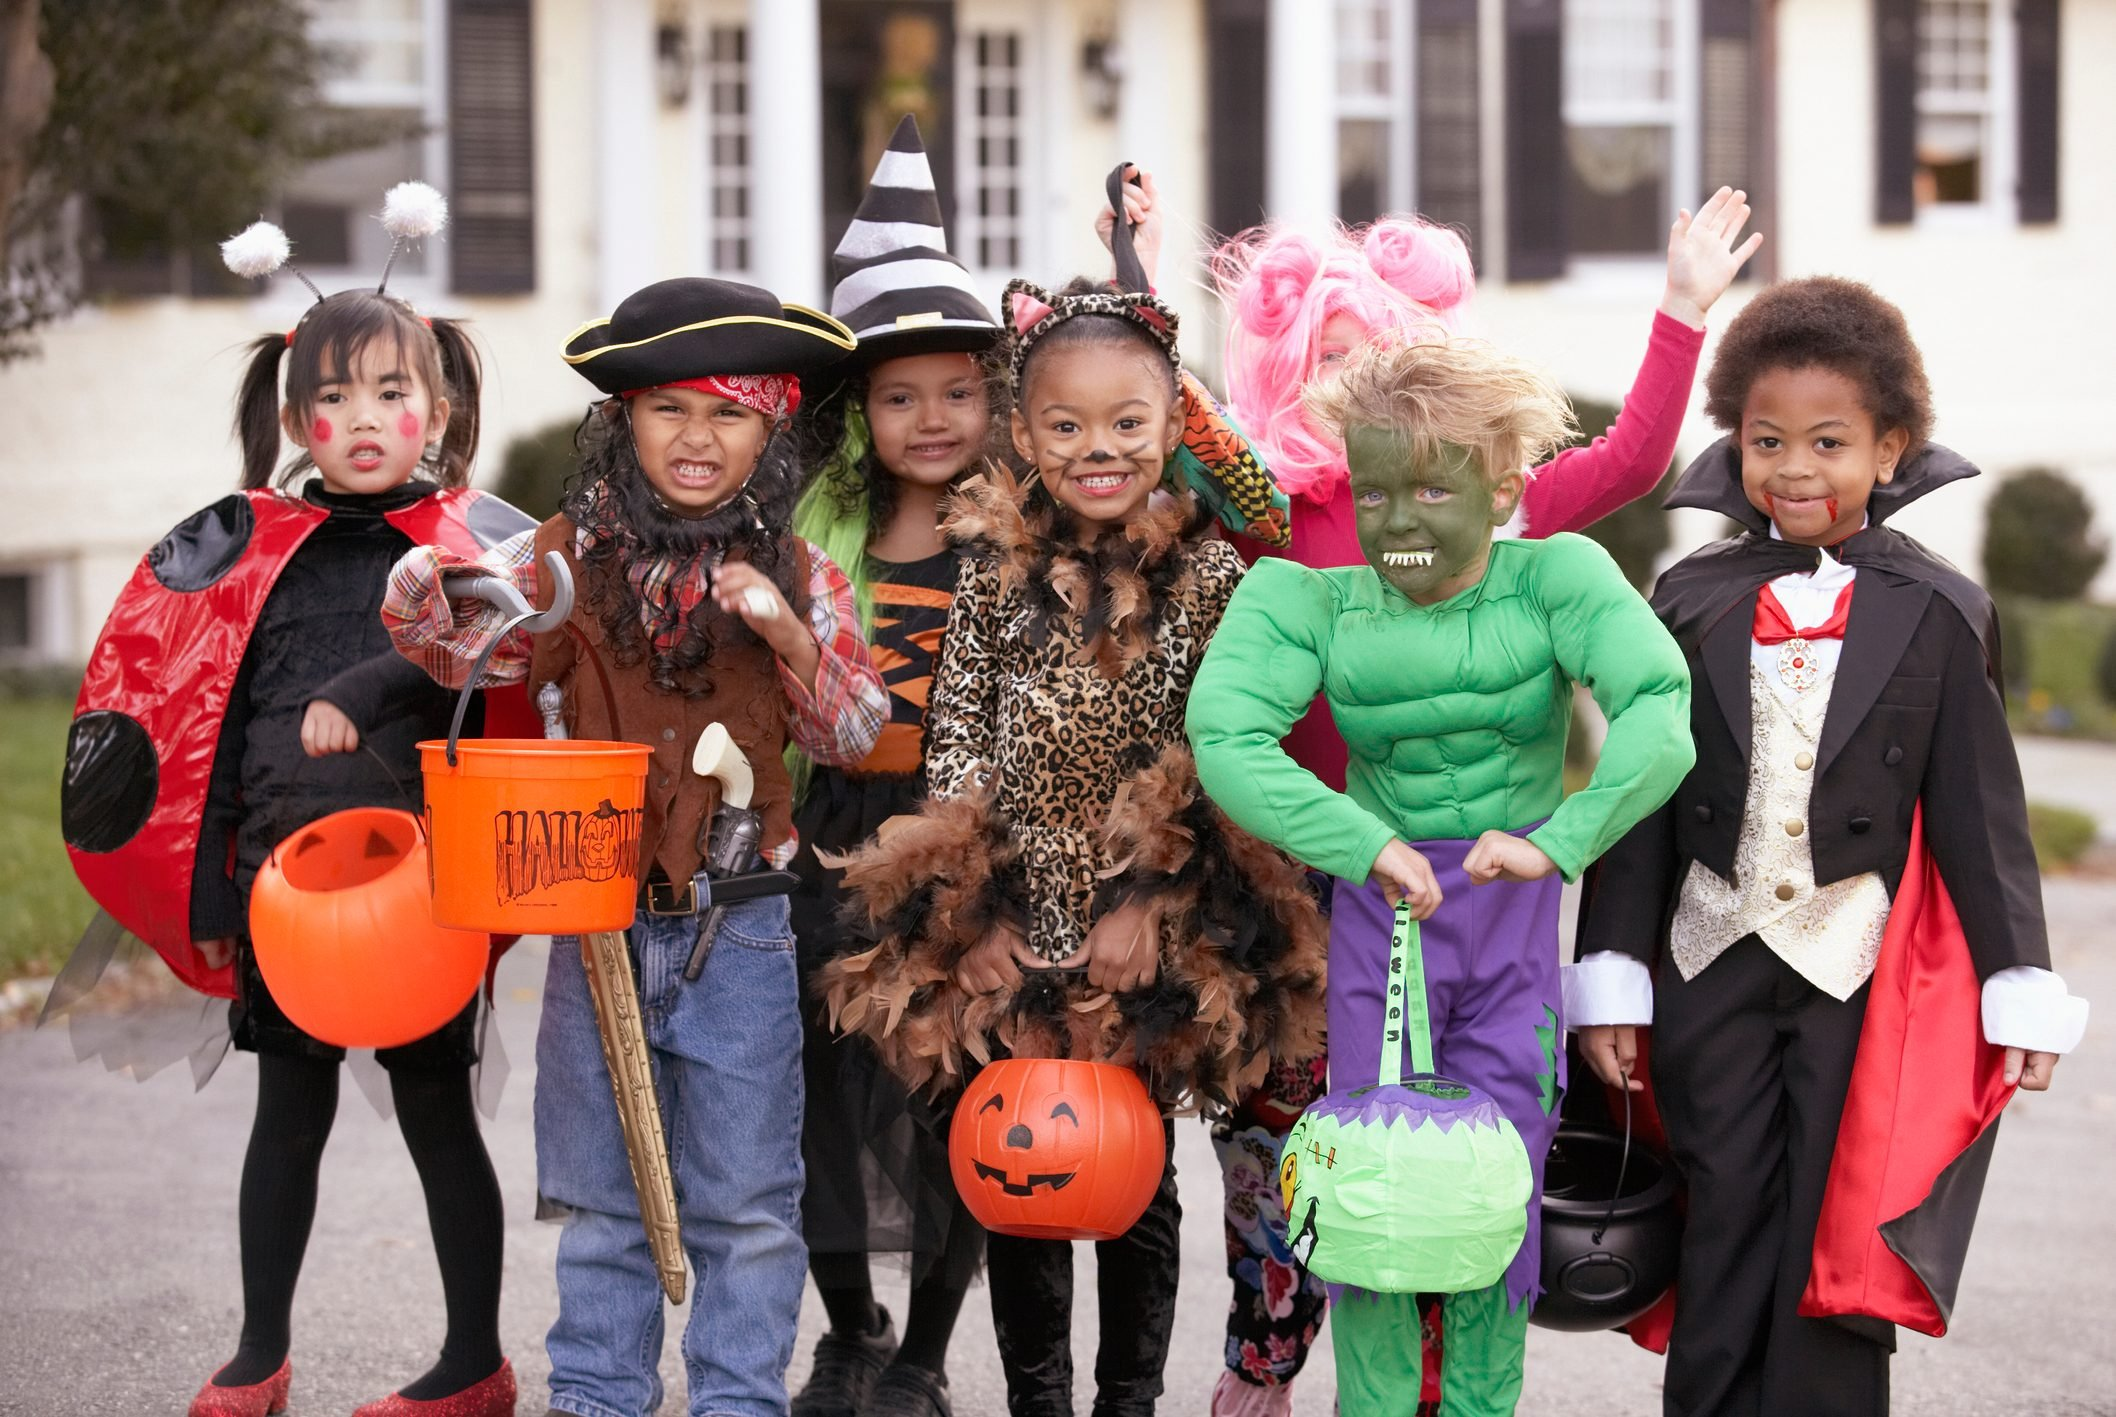 Children (4-7) dressed up for Halloween, group portrait